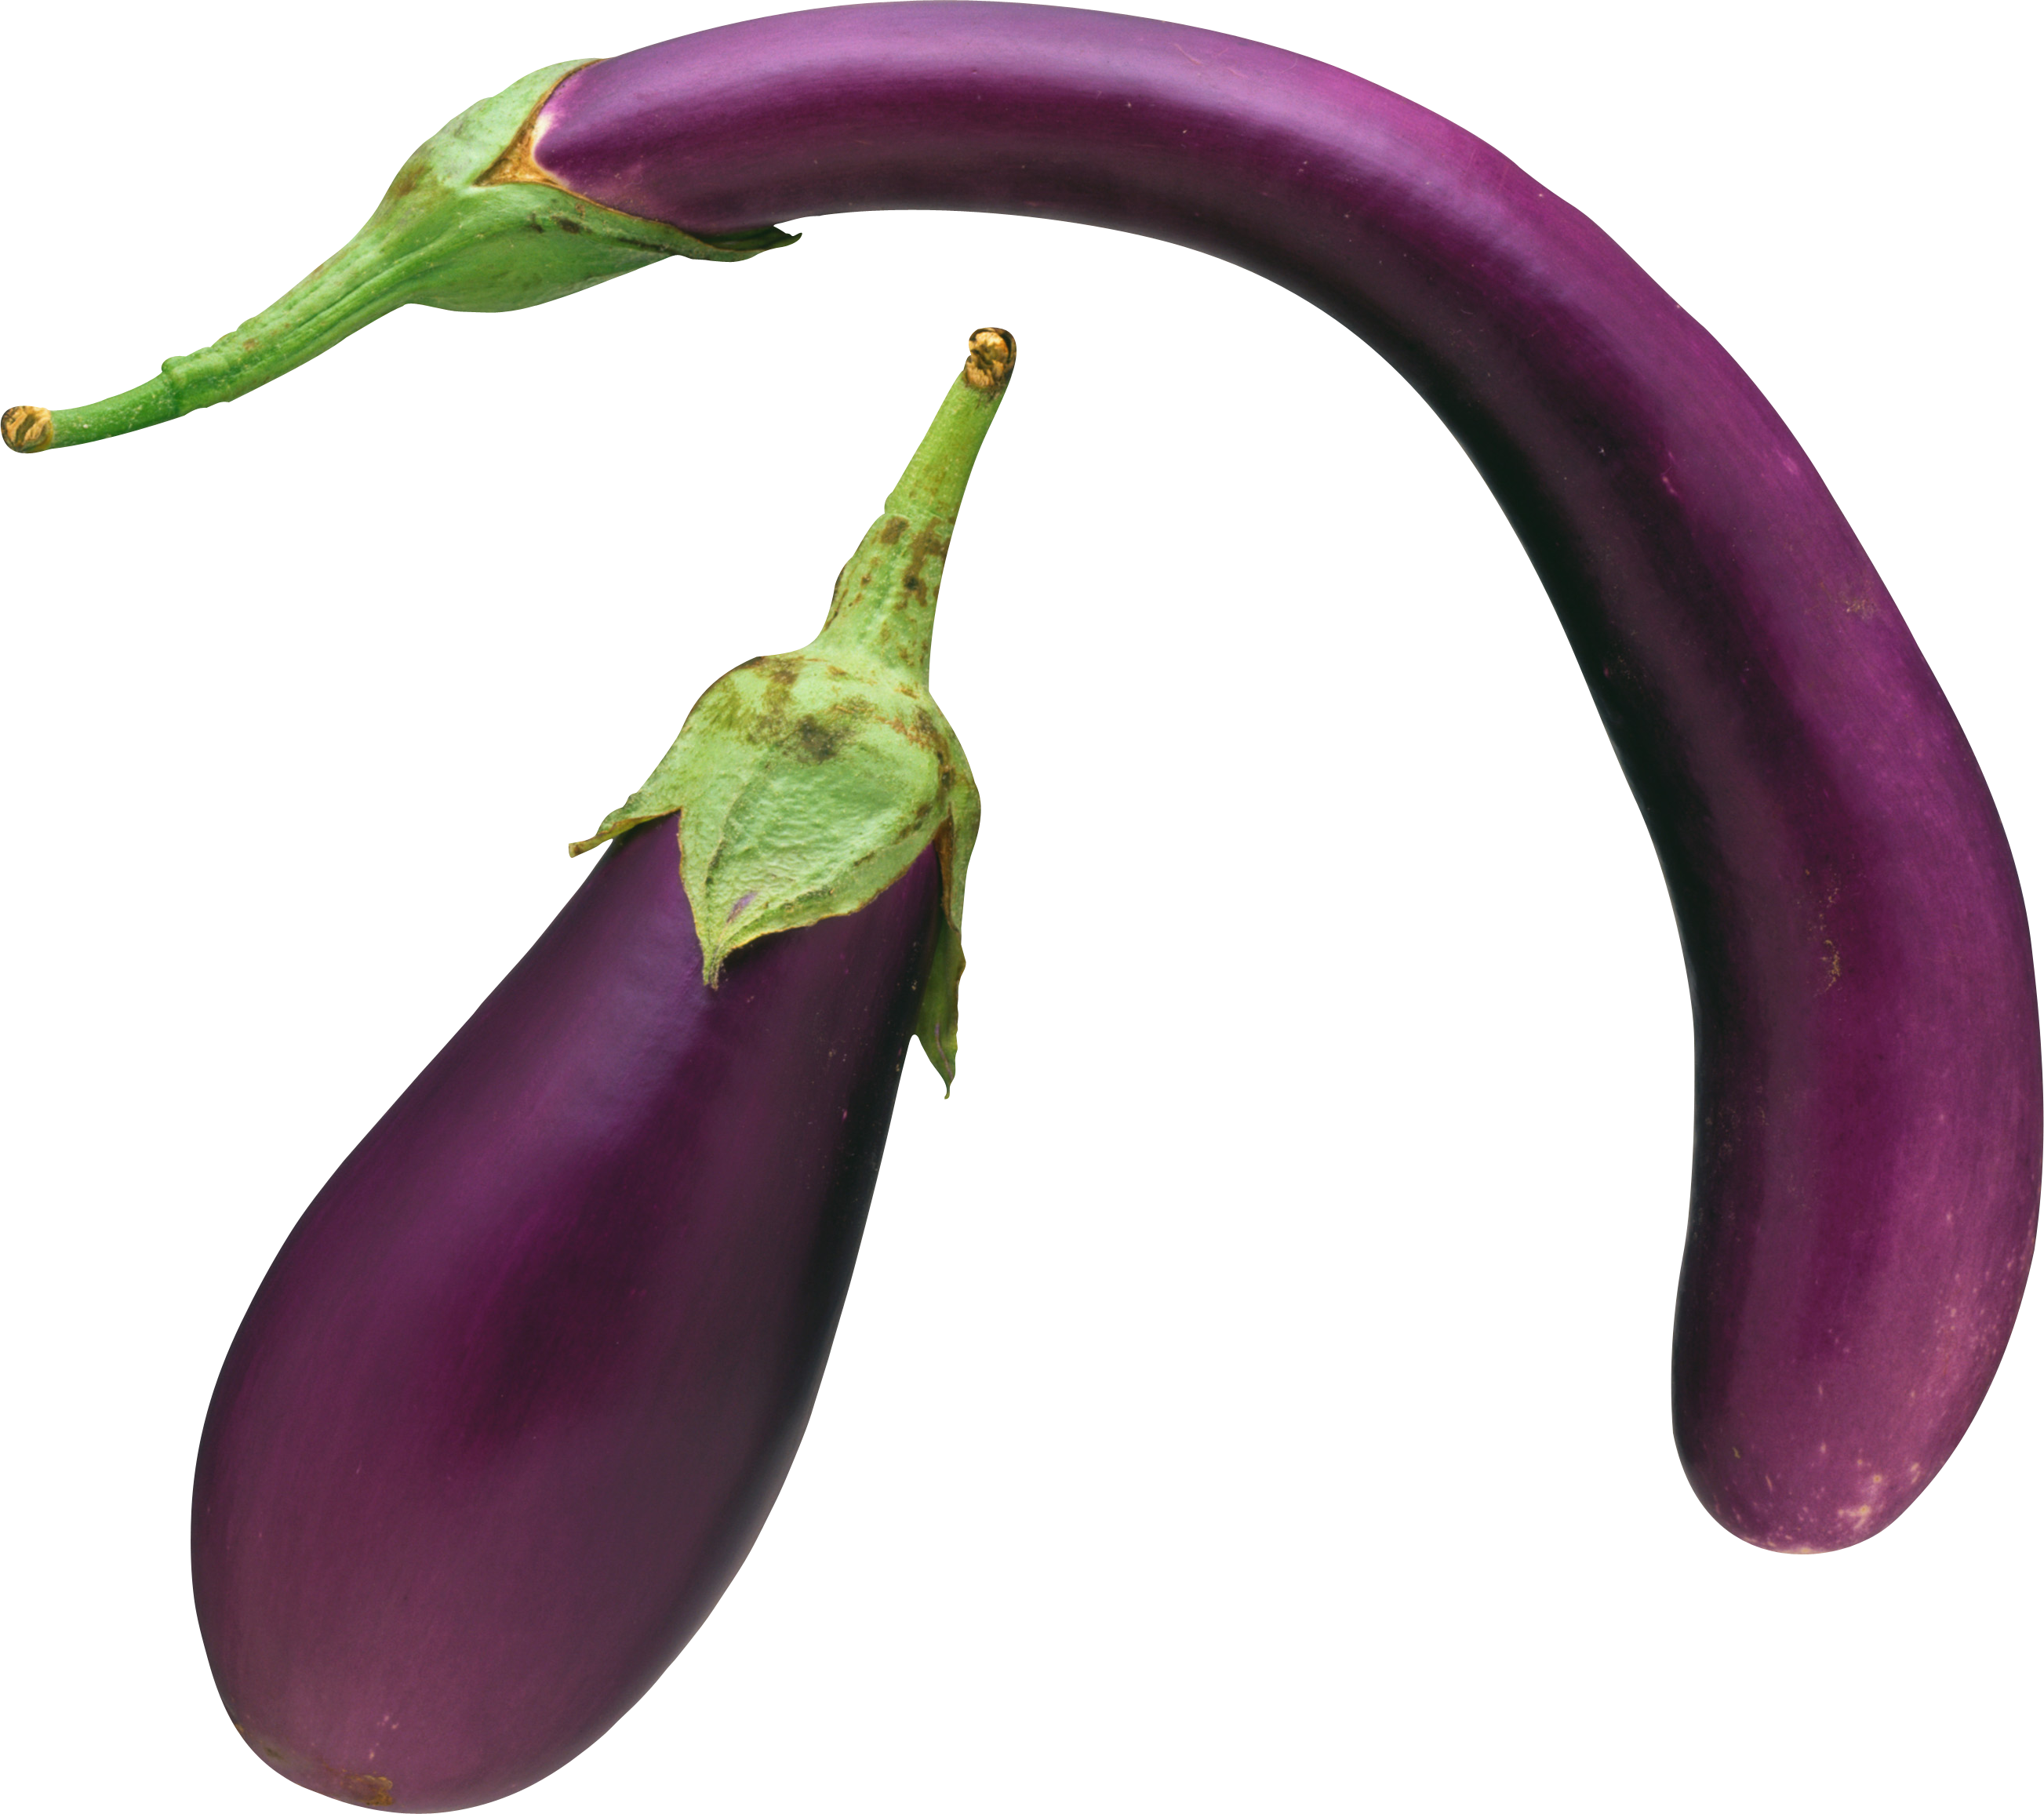 Png images free download. Eggplant clipart single vegetable